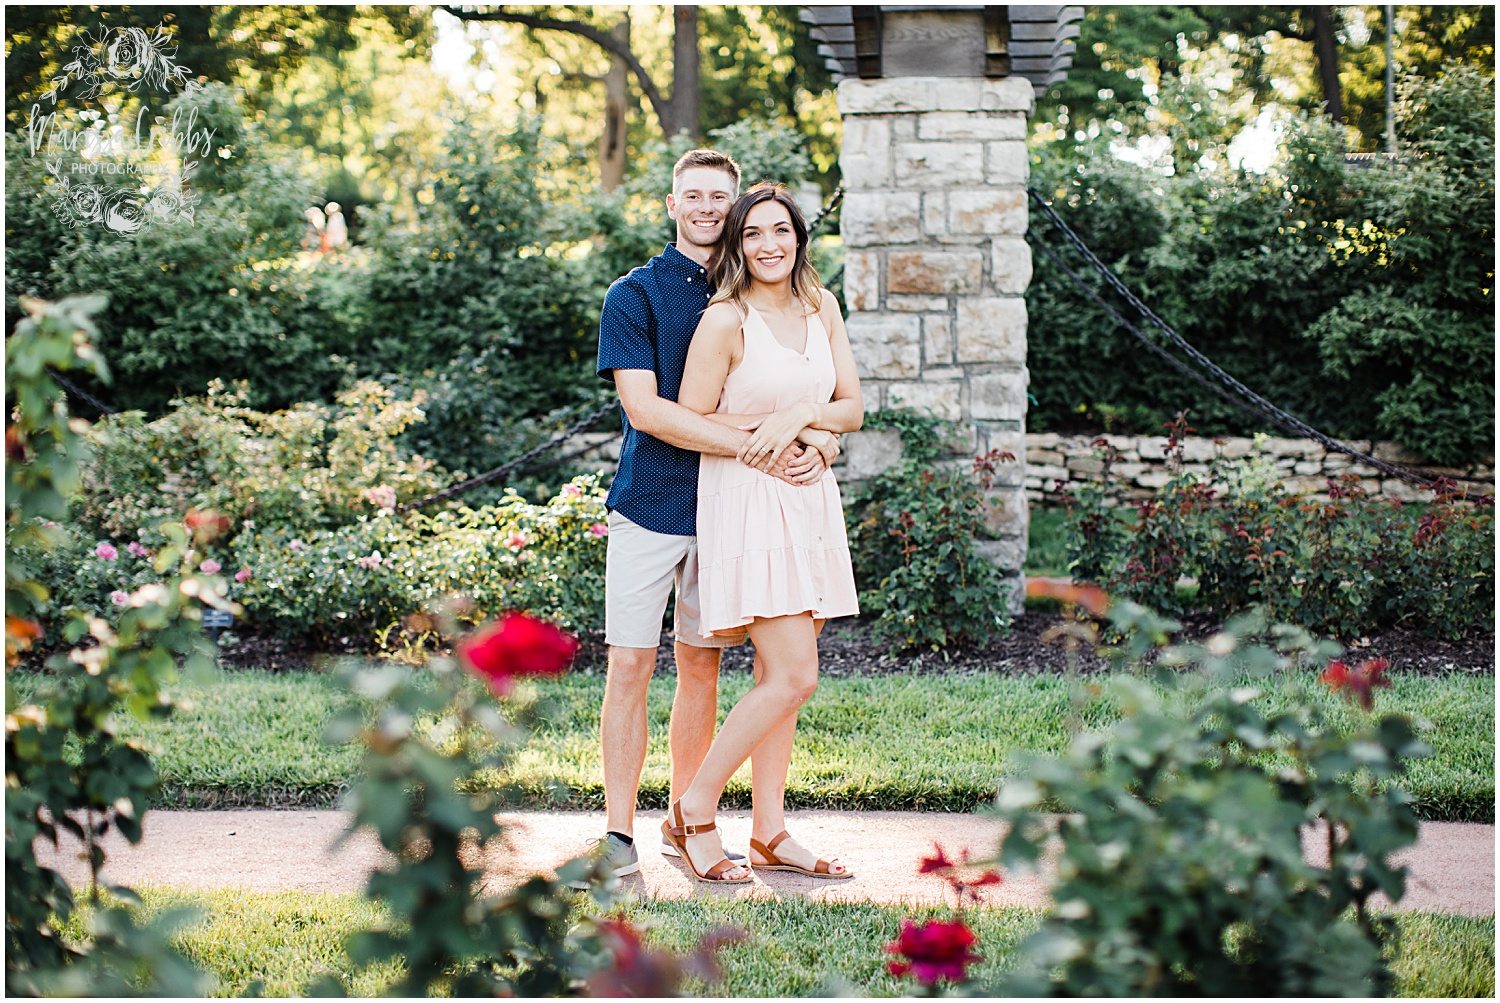 KELSEY & MICHAEL ENGAGEMENT BLOG | MARISSA CRIBBS PHOTOGRAPHY_8440.jpg